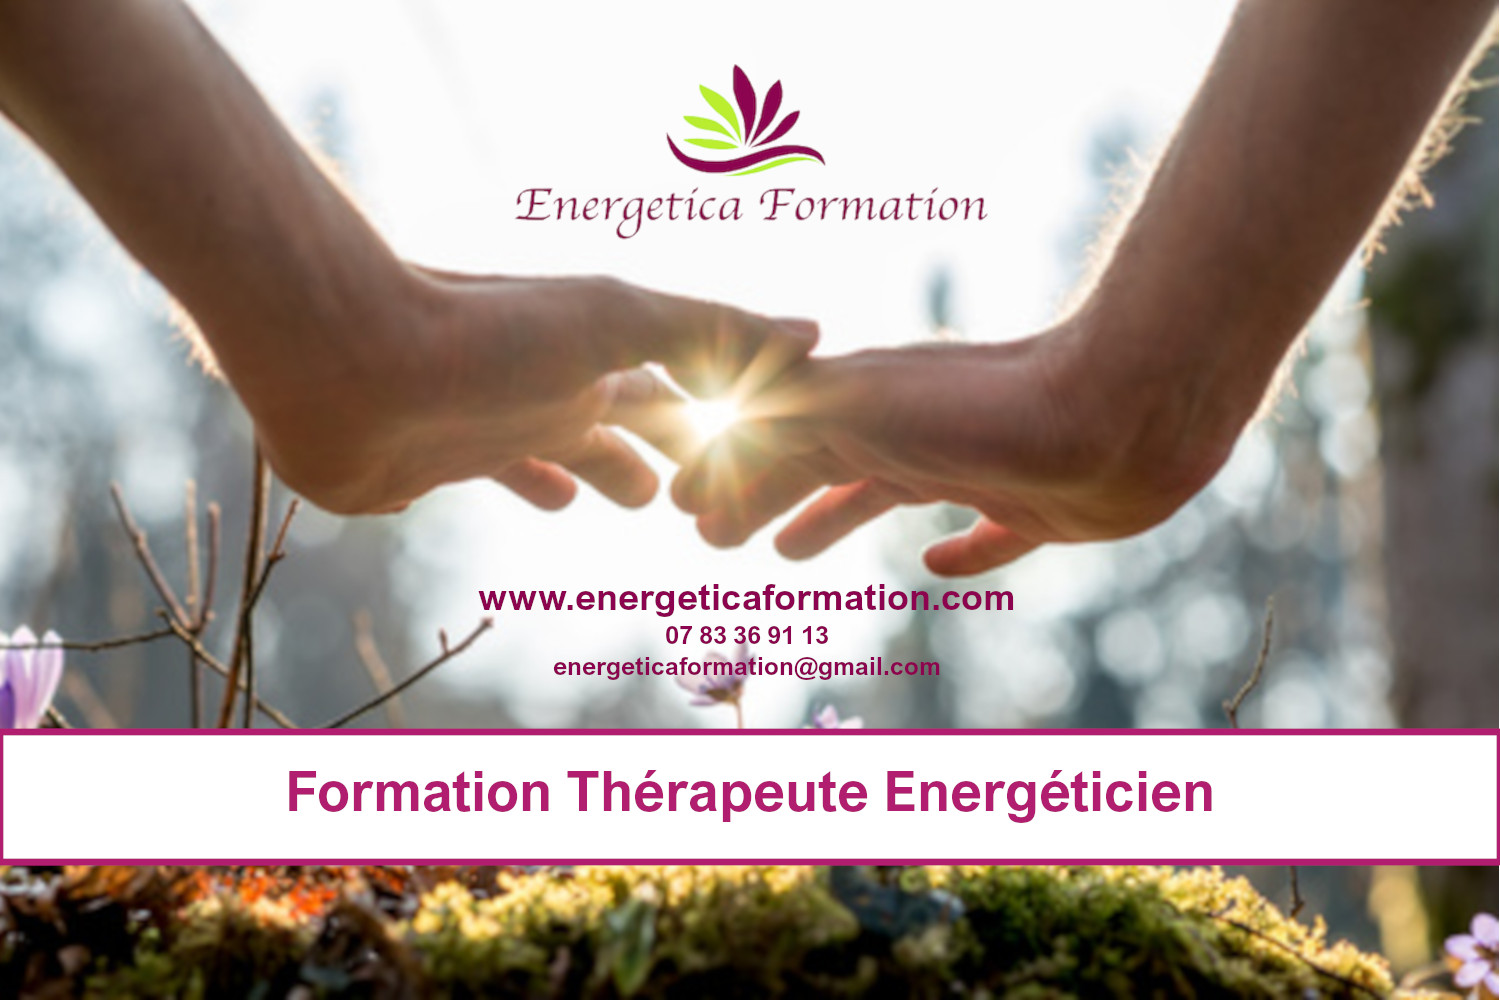 Formation energeticien Toulouse Balma Juin 2021